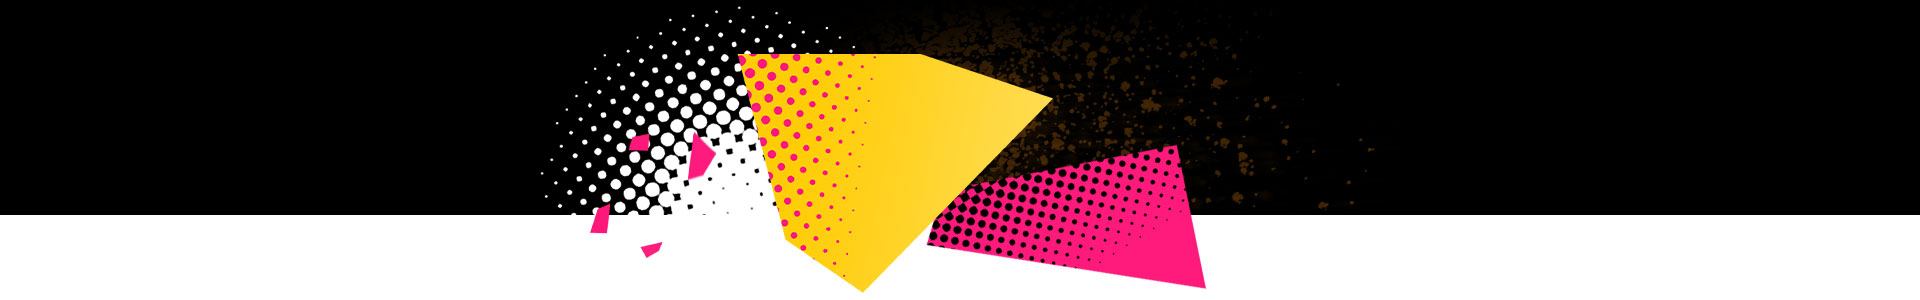 Shapes and dots in black yellow and pink